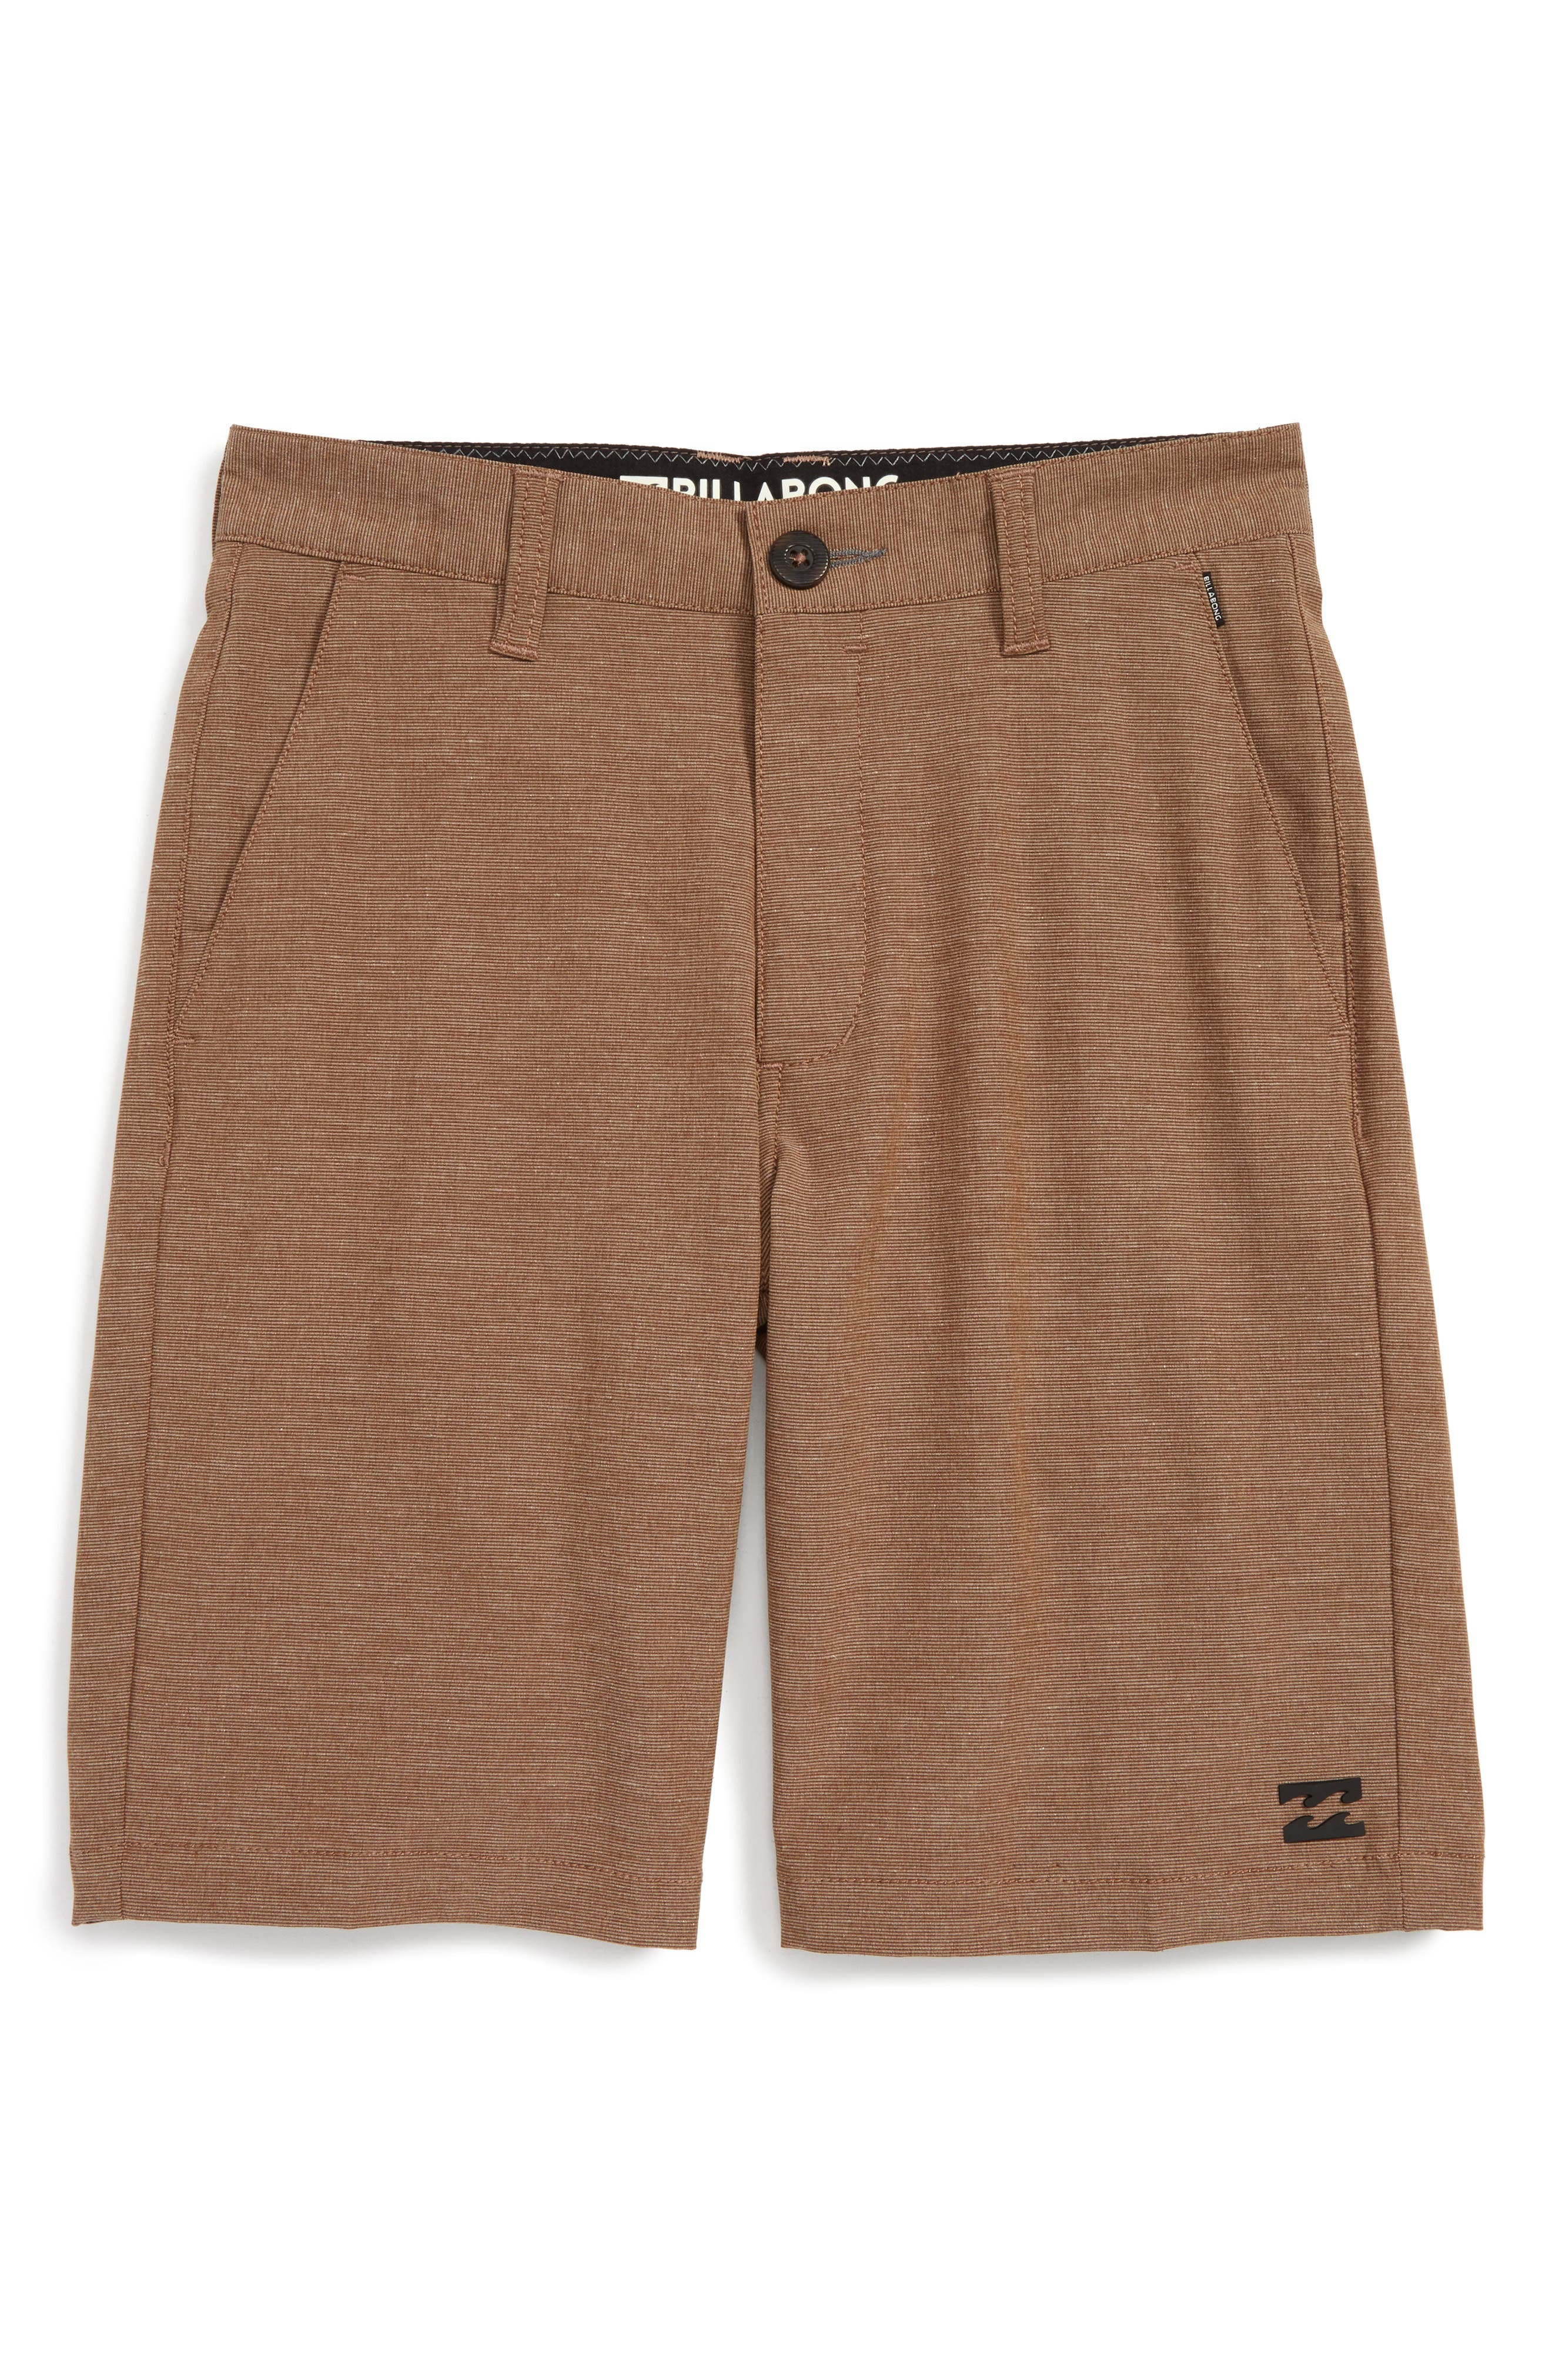 BILLABONG 'Crossfire X Submersible' Hybrid Shorts